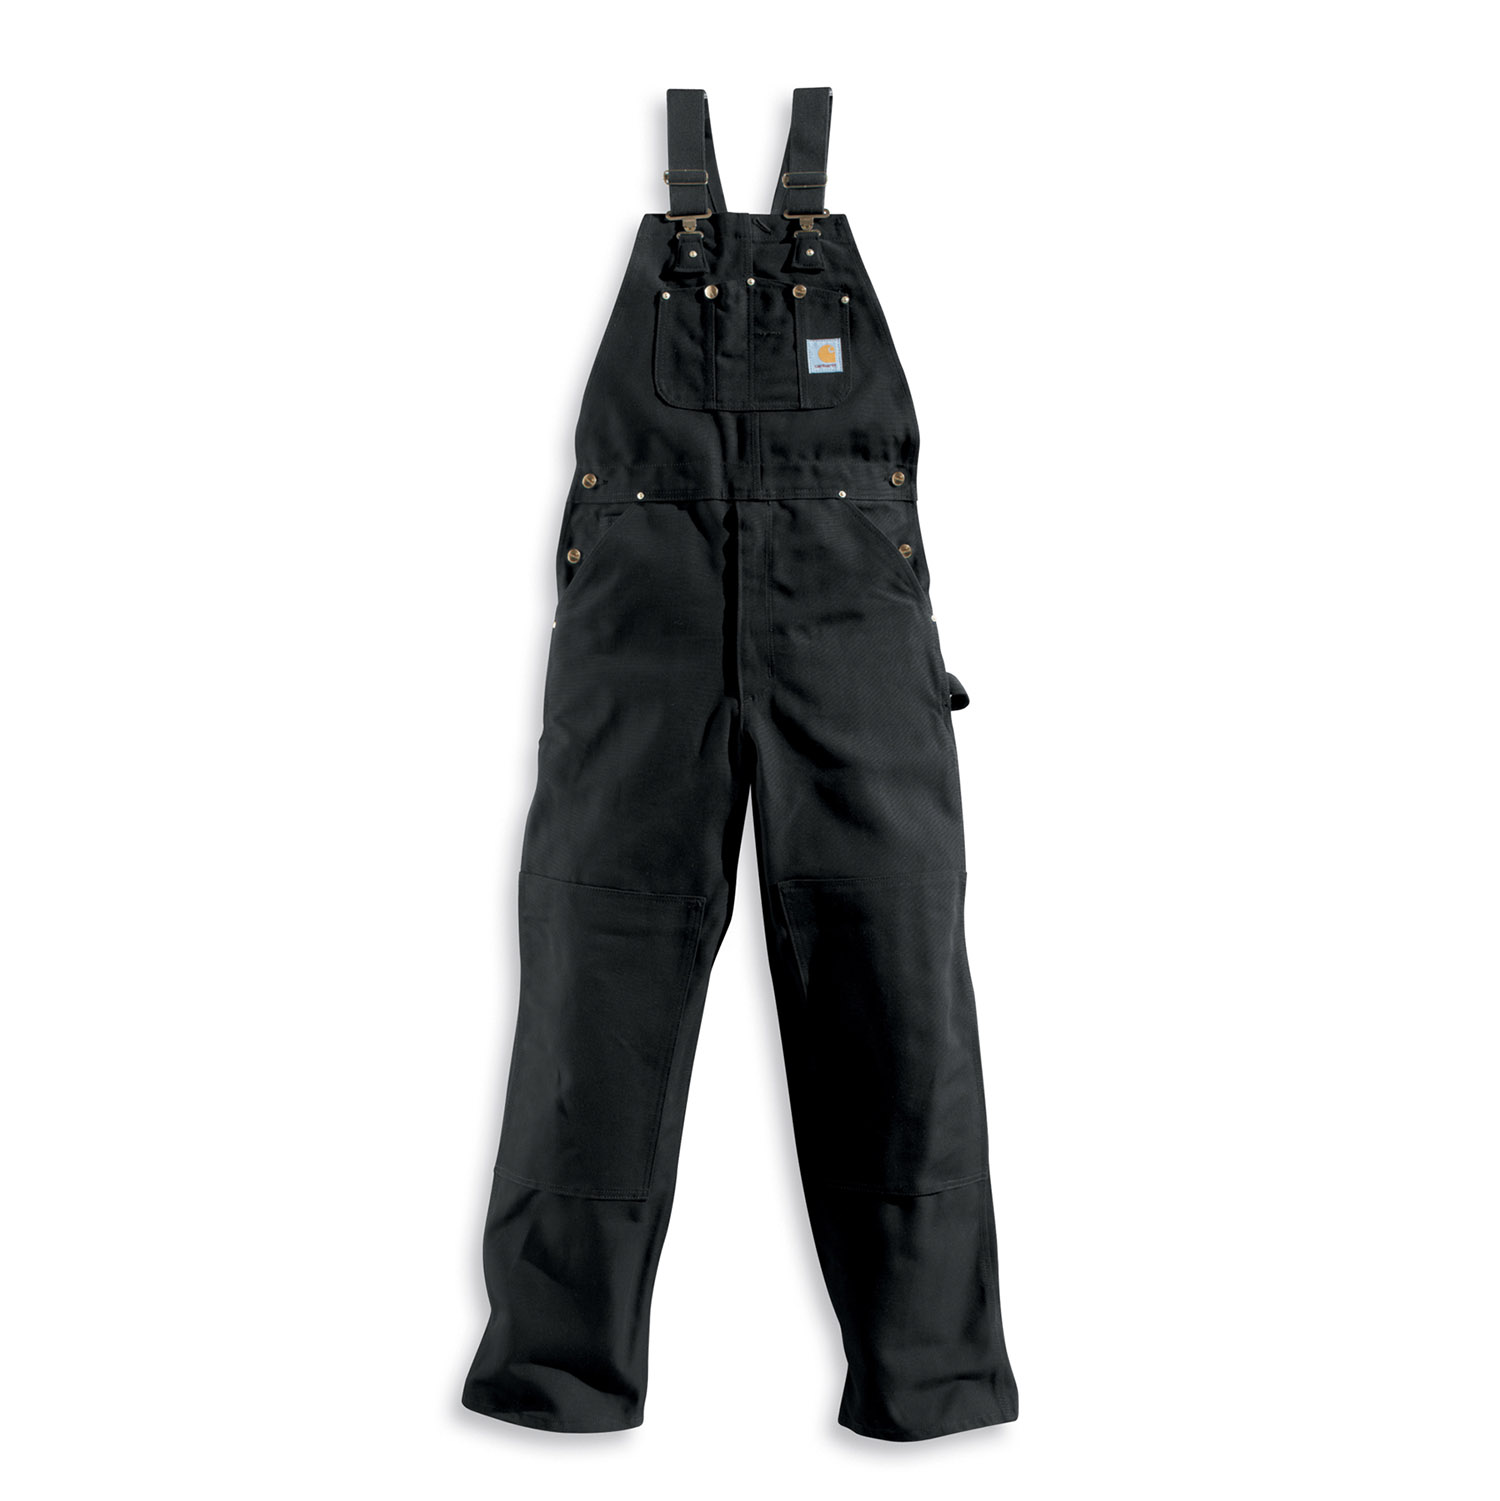 4431a7707af Carhartt Men's Unlined Duck Bib Overalls